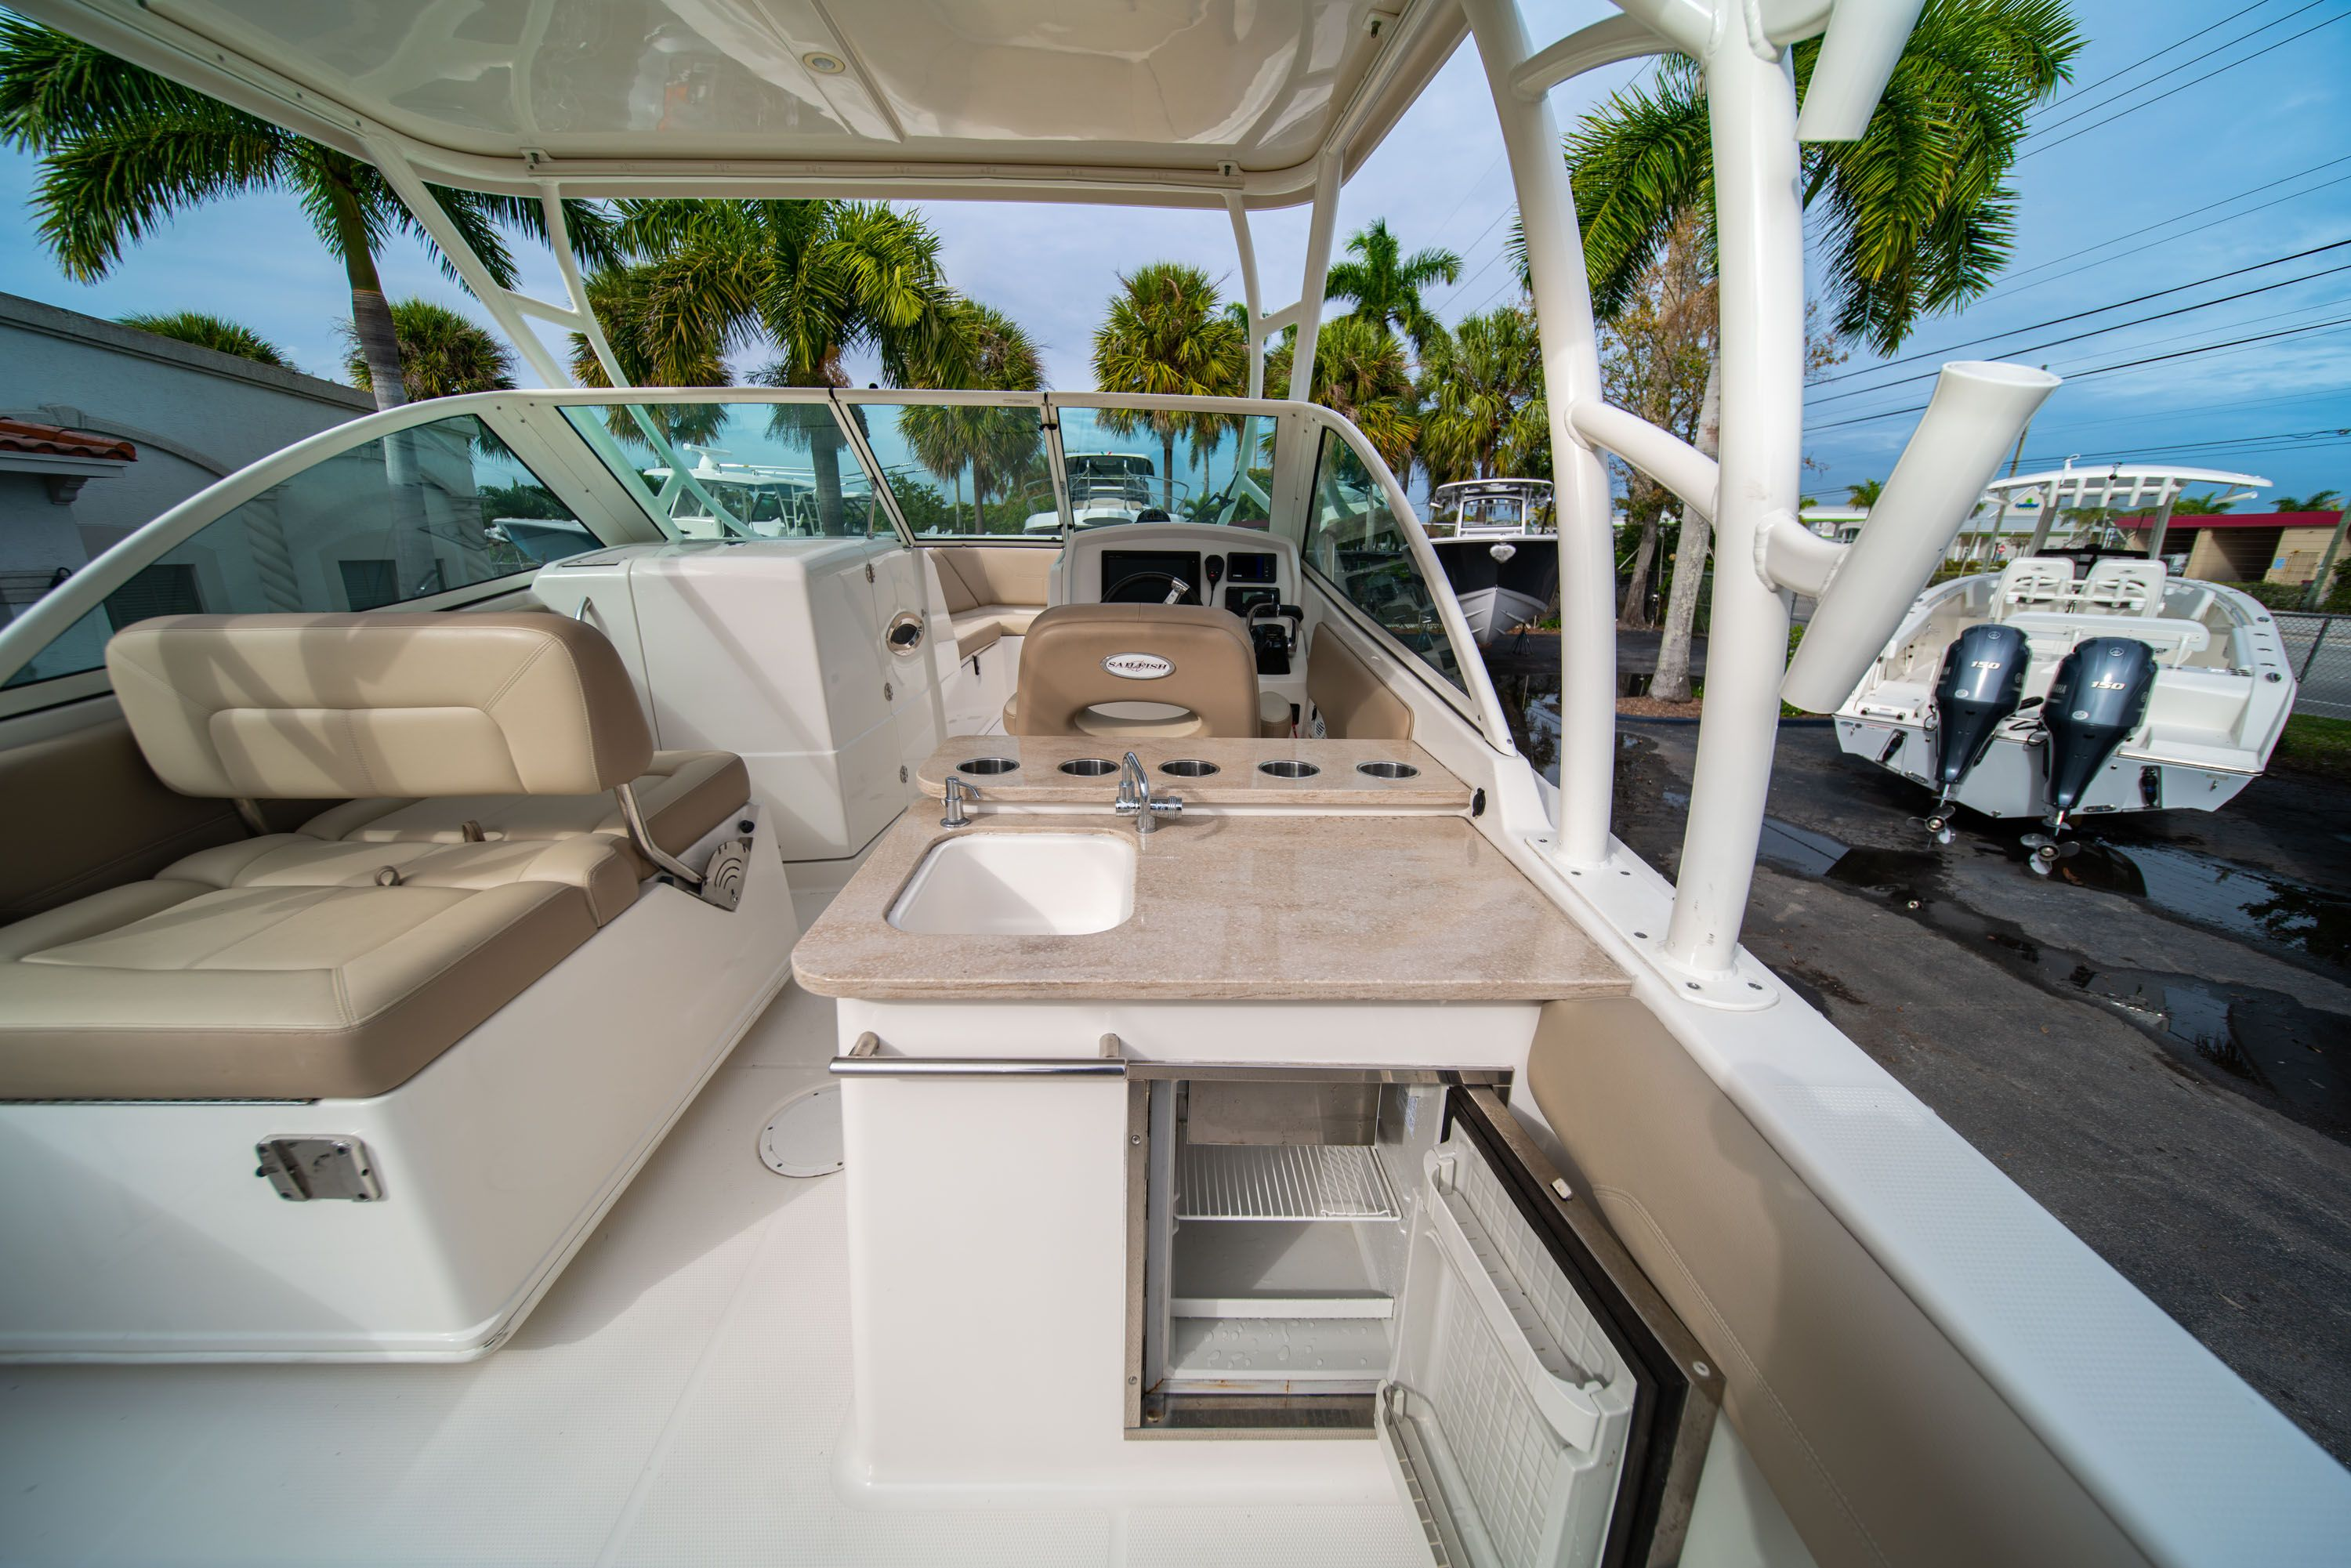 Thumbnail 27 for Used 2017 Sailfish 275 Dual Console boat for sale in West Palm Beach, FL